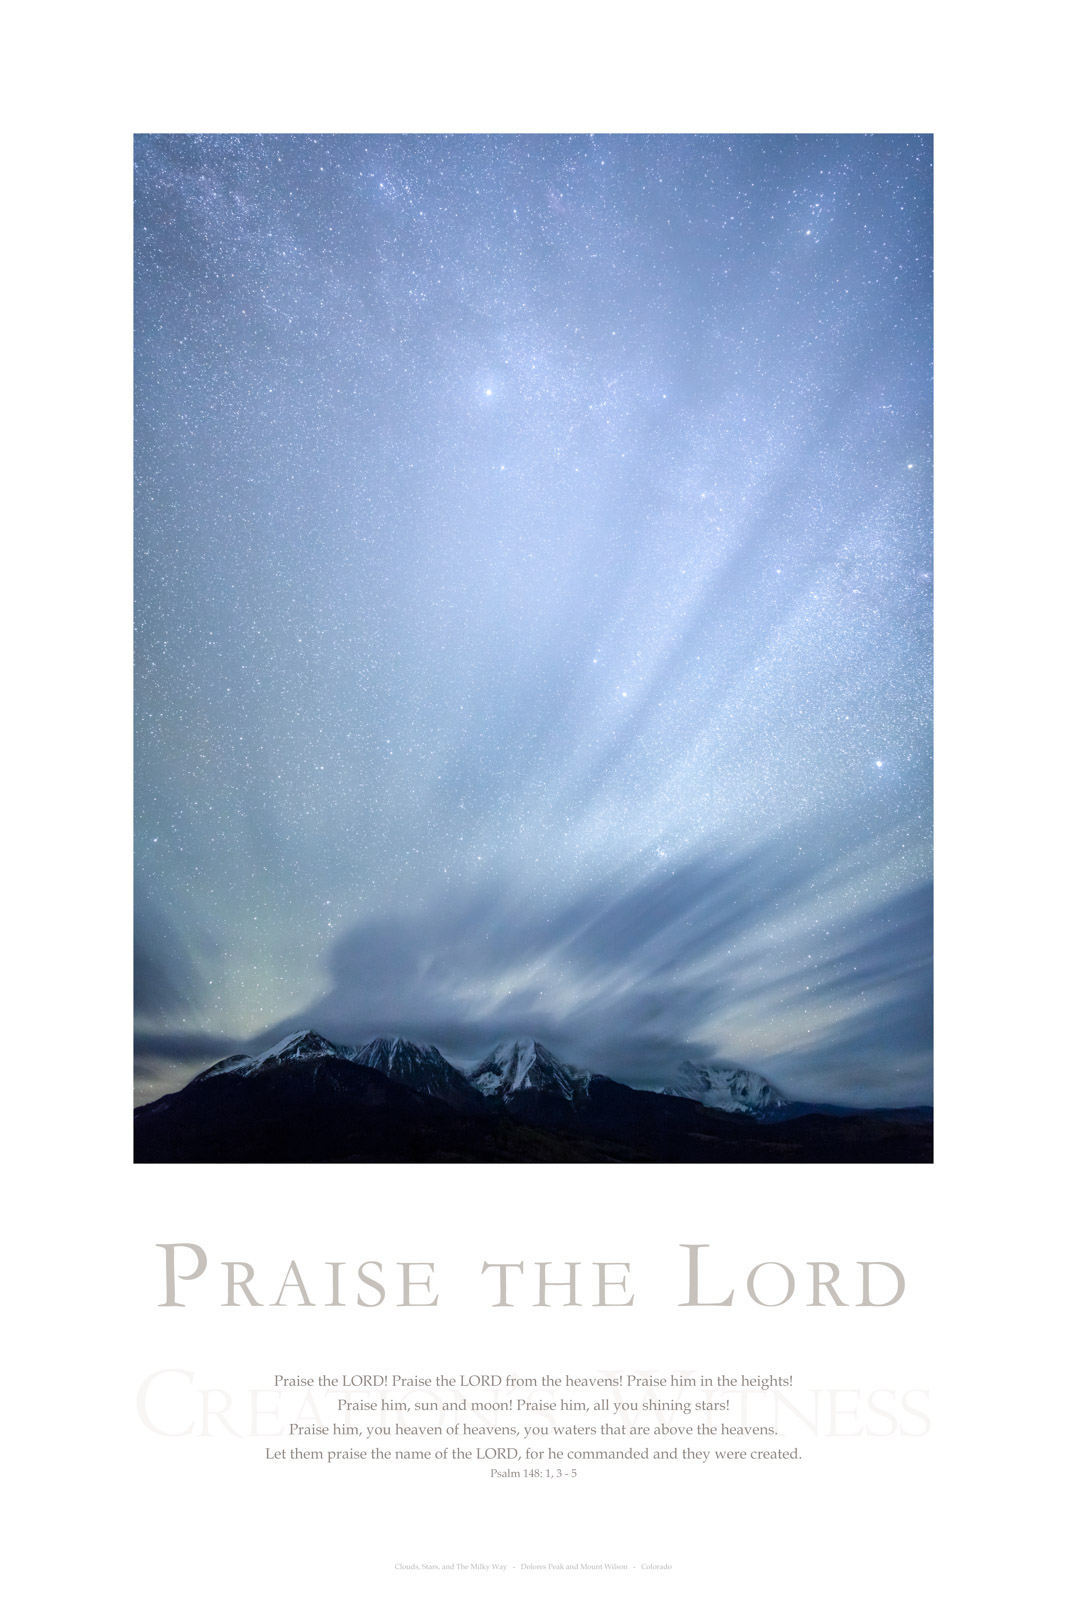 Praise the LORD! Praise the LORD from the heavens! Praise him in the heights! Praise him, sun and moon! Praise him, all you shining...